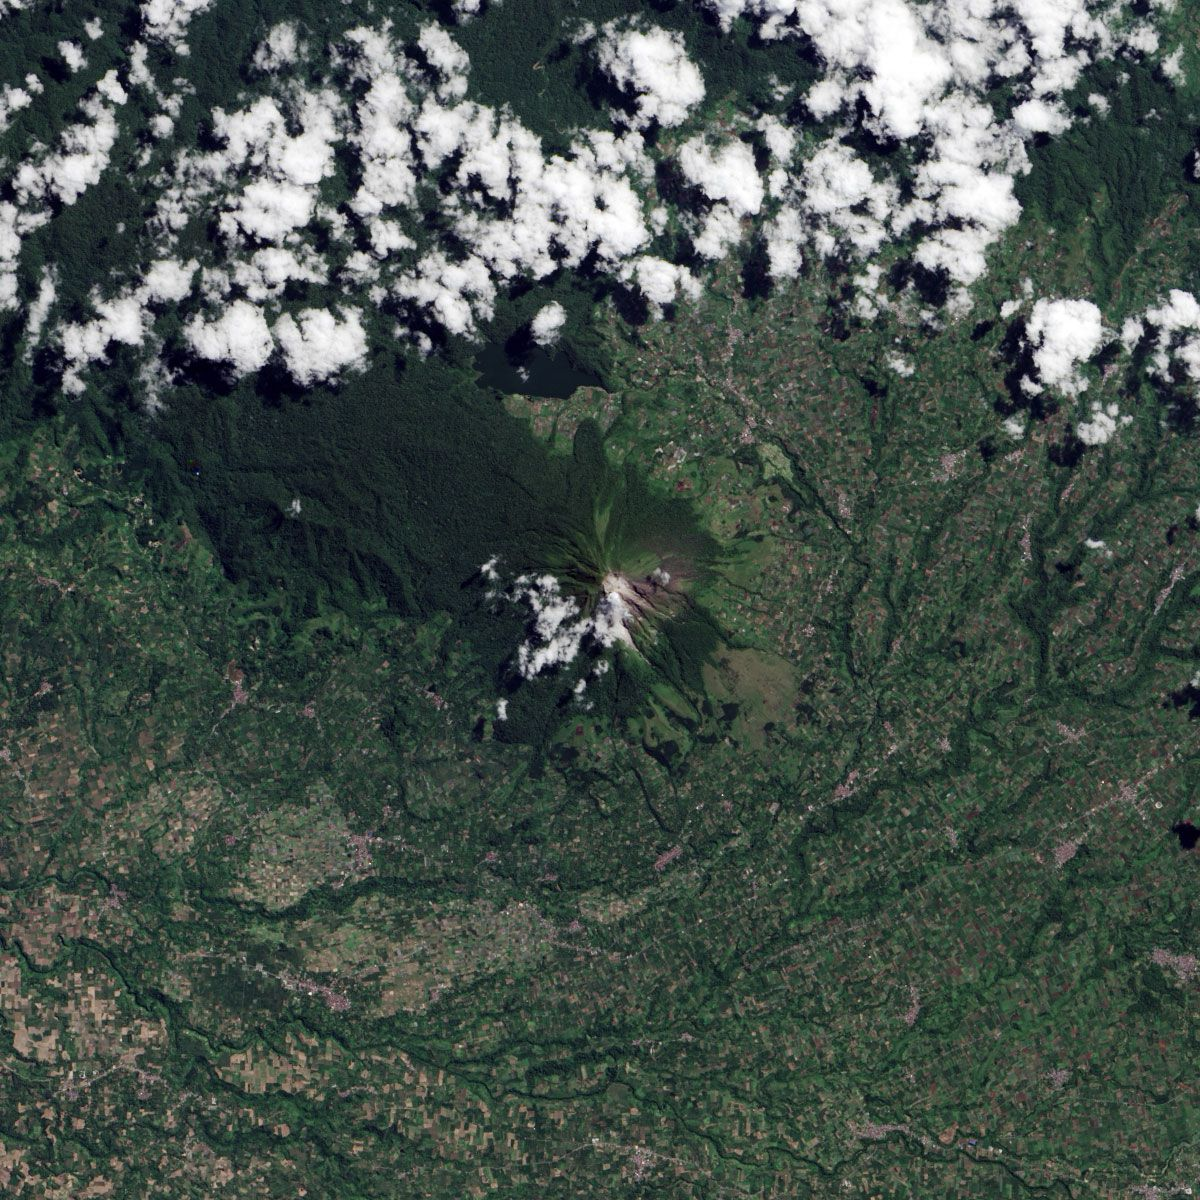 Mount Sinabung, June 2013. Image: NASA.